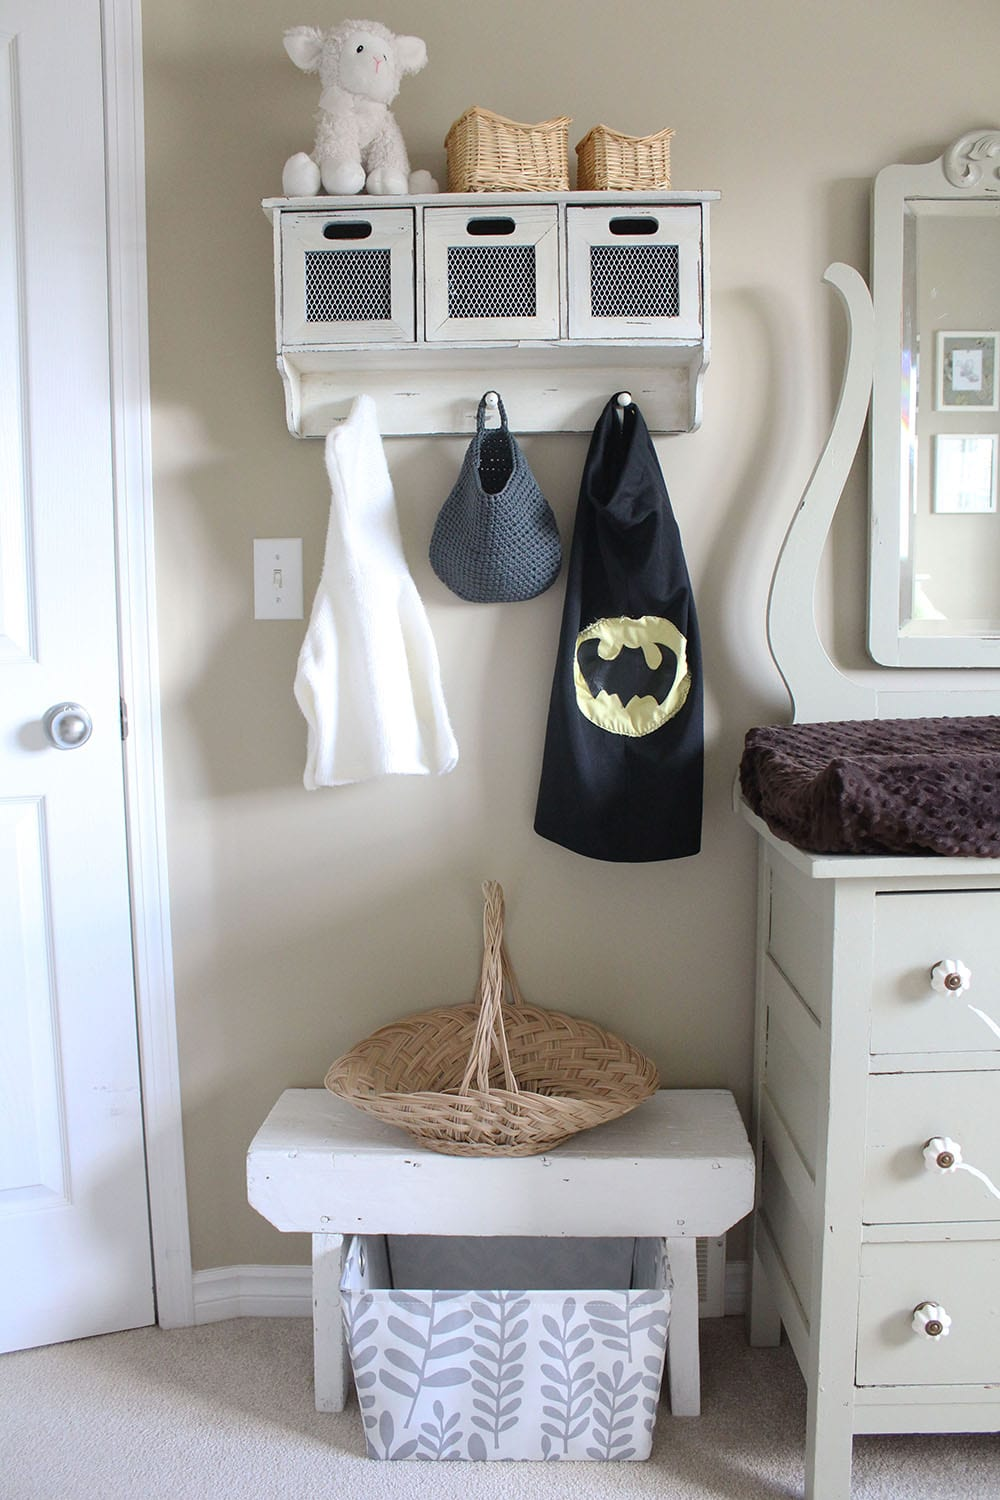 Home decor trends may come and go, but there's one trend that better not be going anywhere and that's eco-friendly home decor. Eco-friendly nursery decor is one of several current trends that's not only stylish, but is also sustainable!